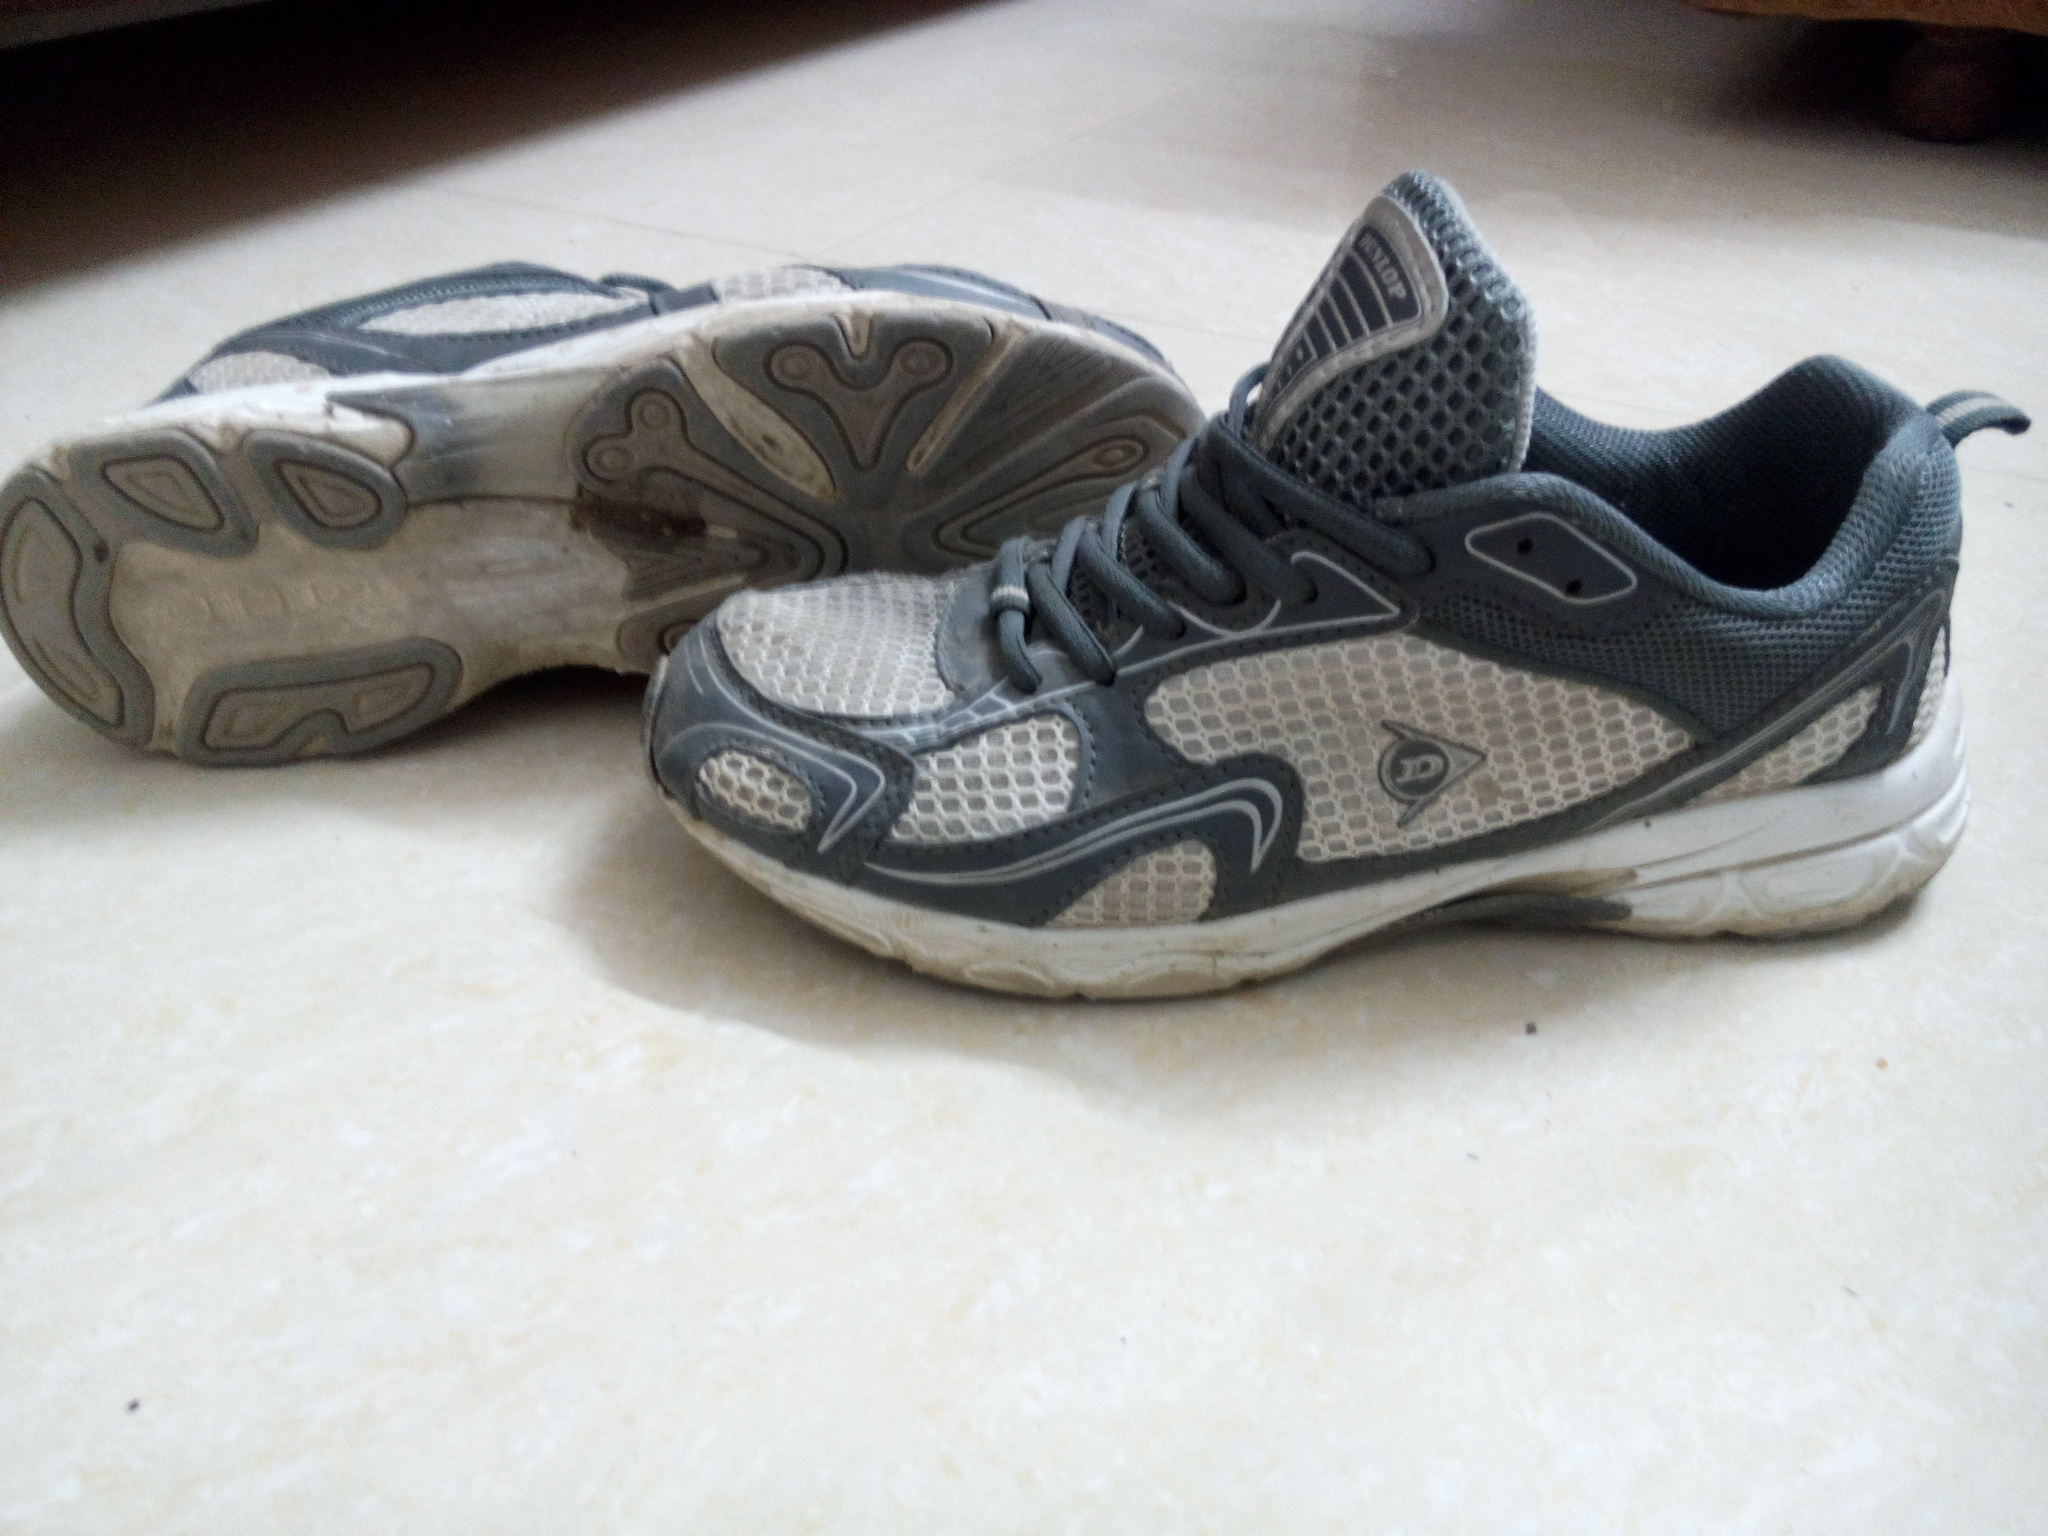 3151daf3ce4 Dunlop running shoes review